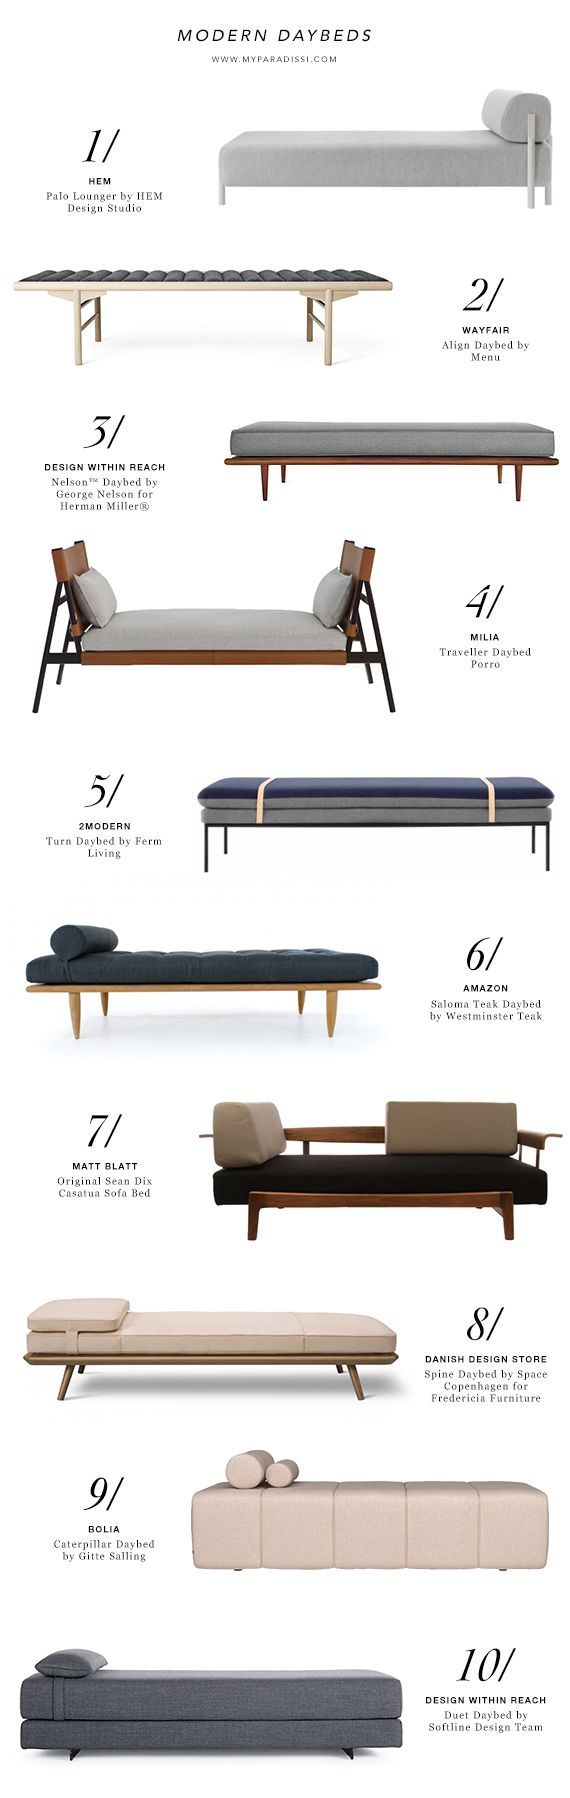 1 | Palo Lounger by HEM Design Studio (HEM, €1099)2 | Align Daybed by Menu (Wayfair, $2399.99)3 | Nelson™ Daybed by George Nelson for Herman Miller® (Design Within Reach, $2775+)4 | Traveller Daybed P